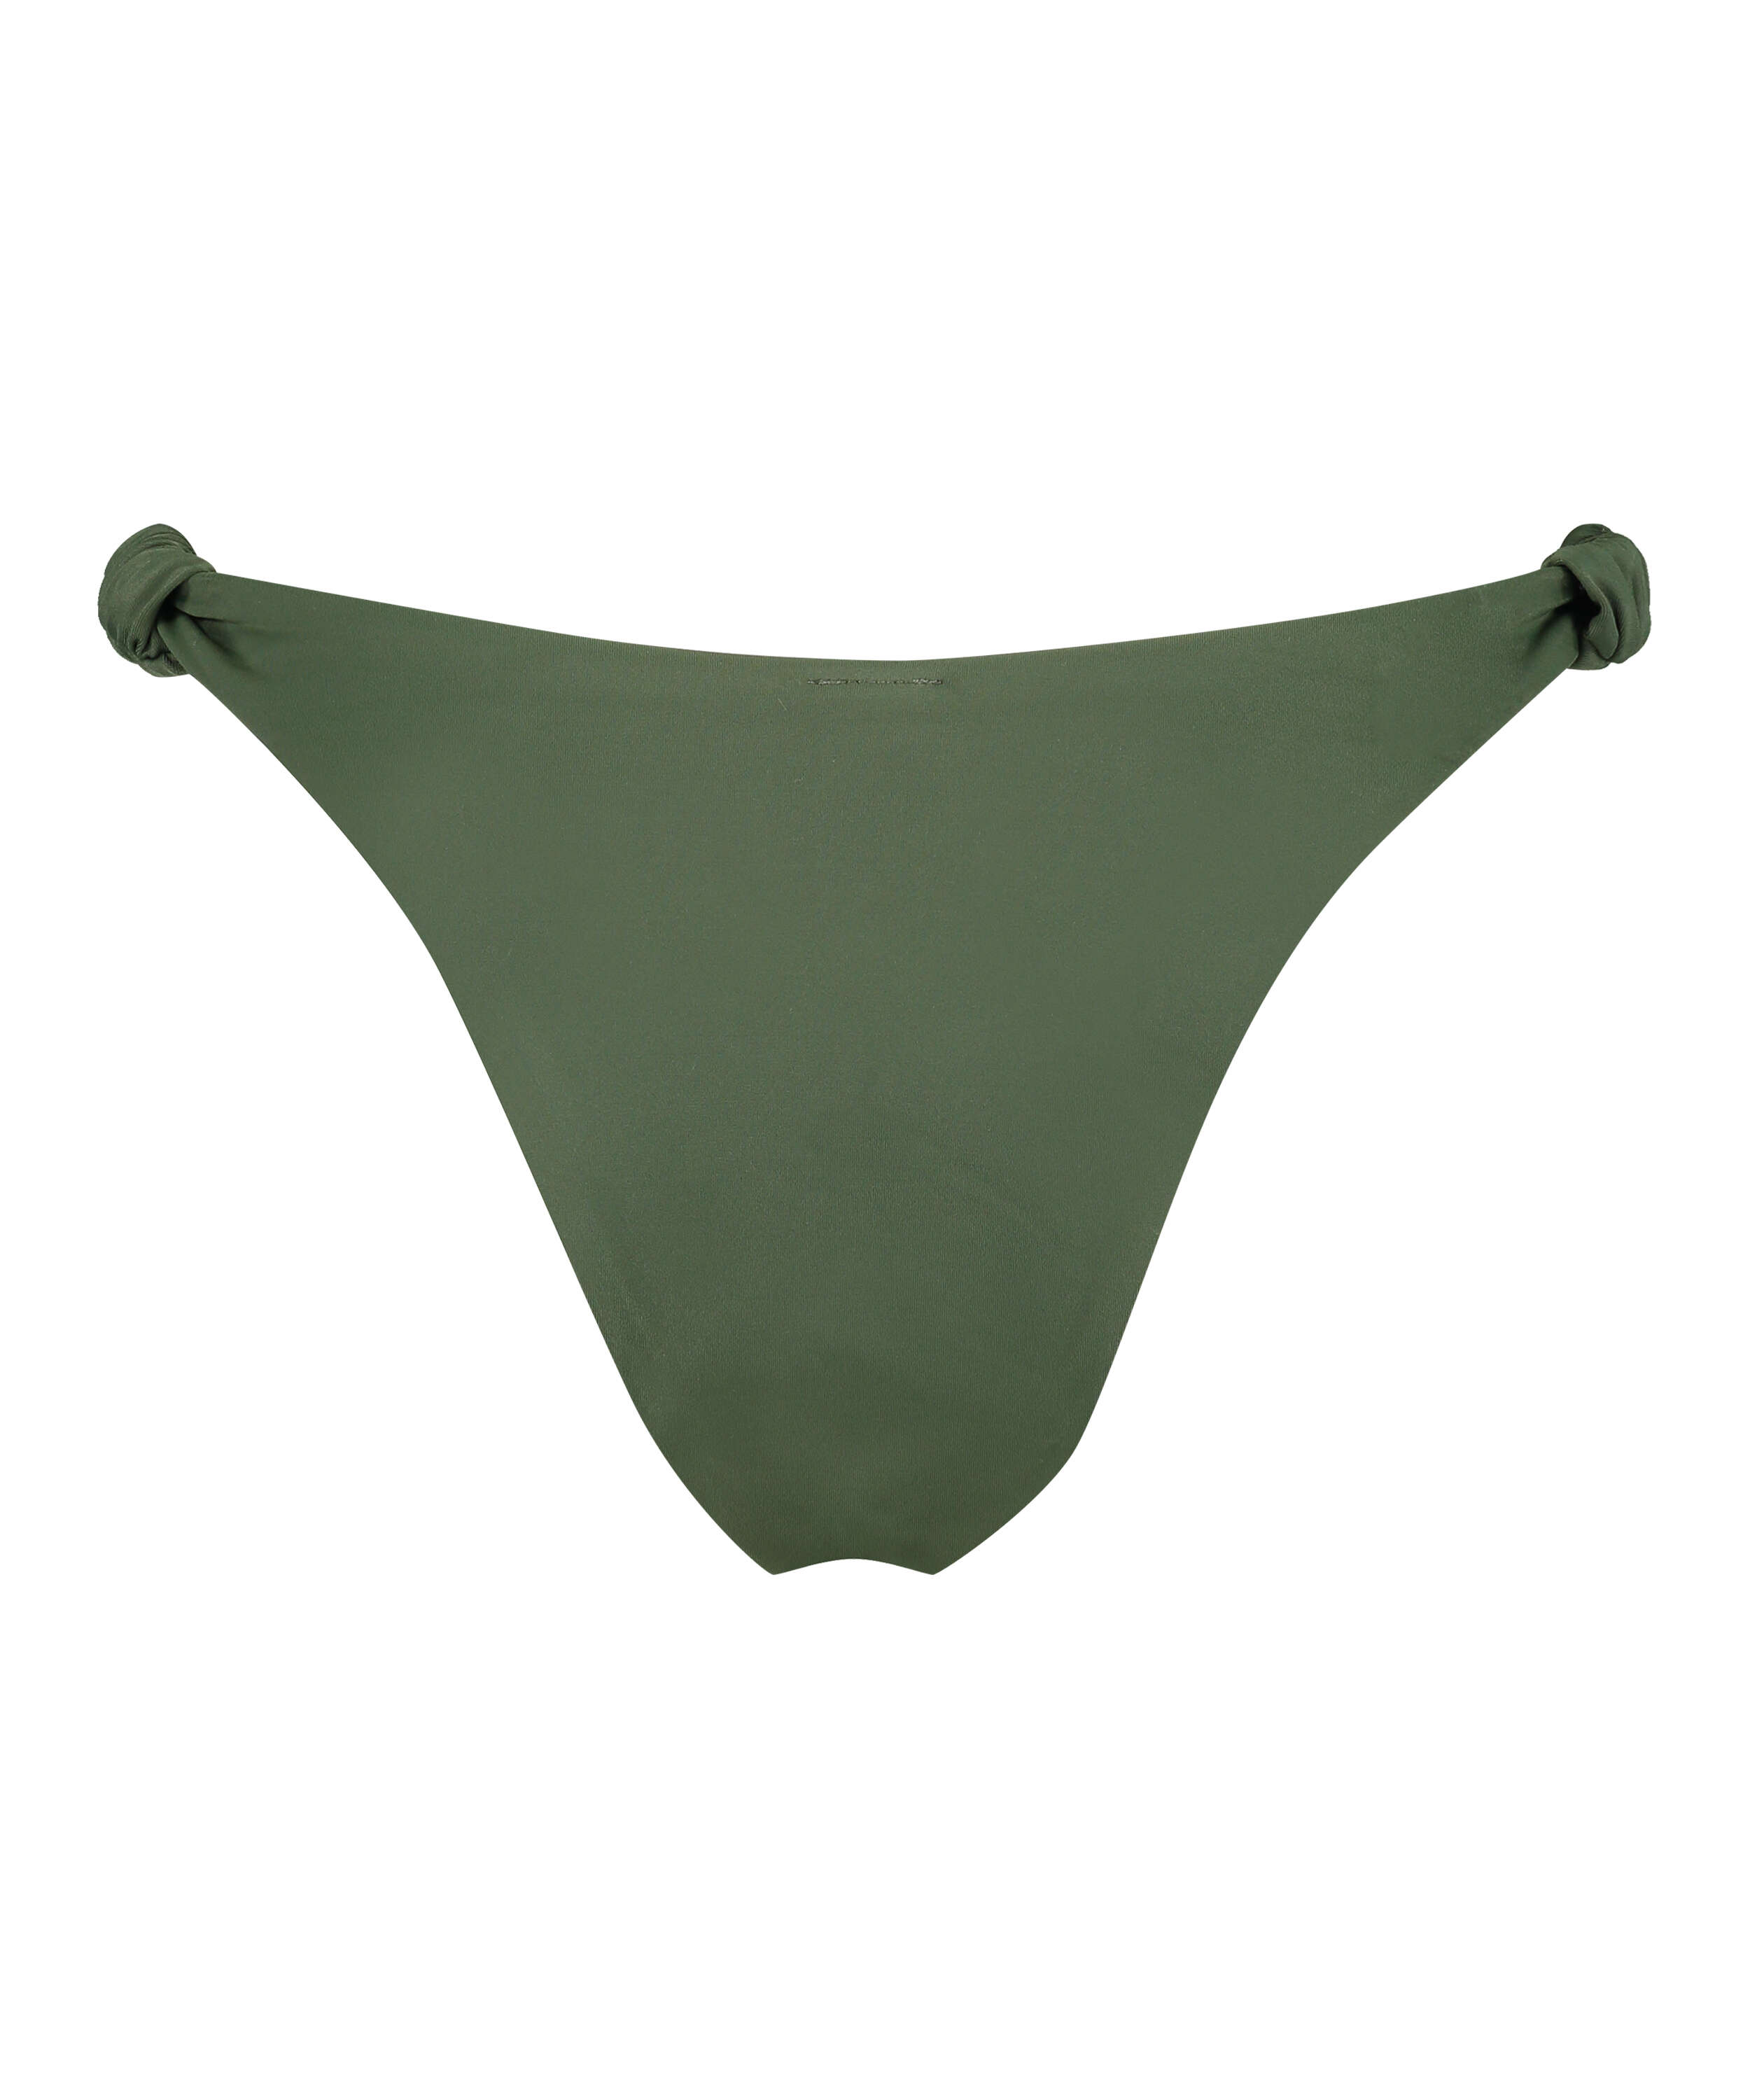 Luxe high-cut bikini bottoms, Green, main